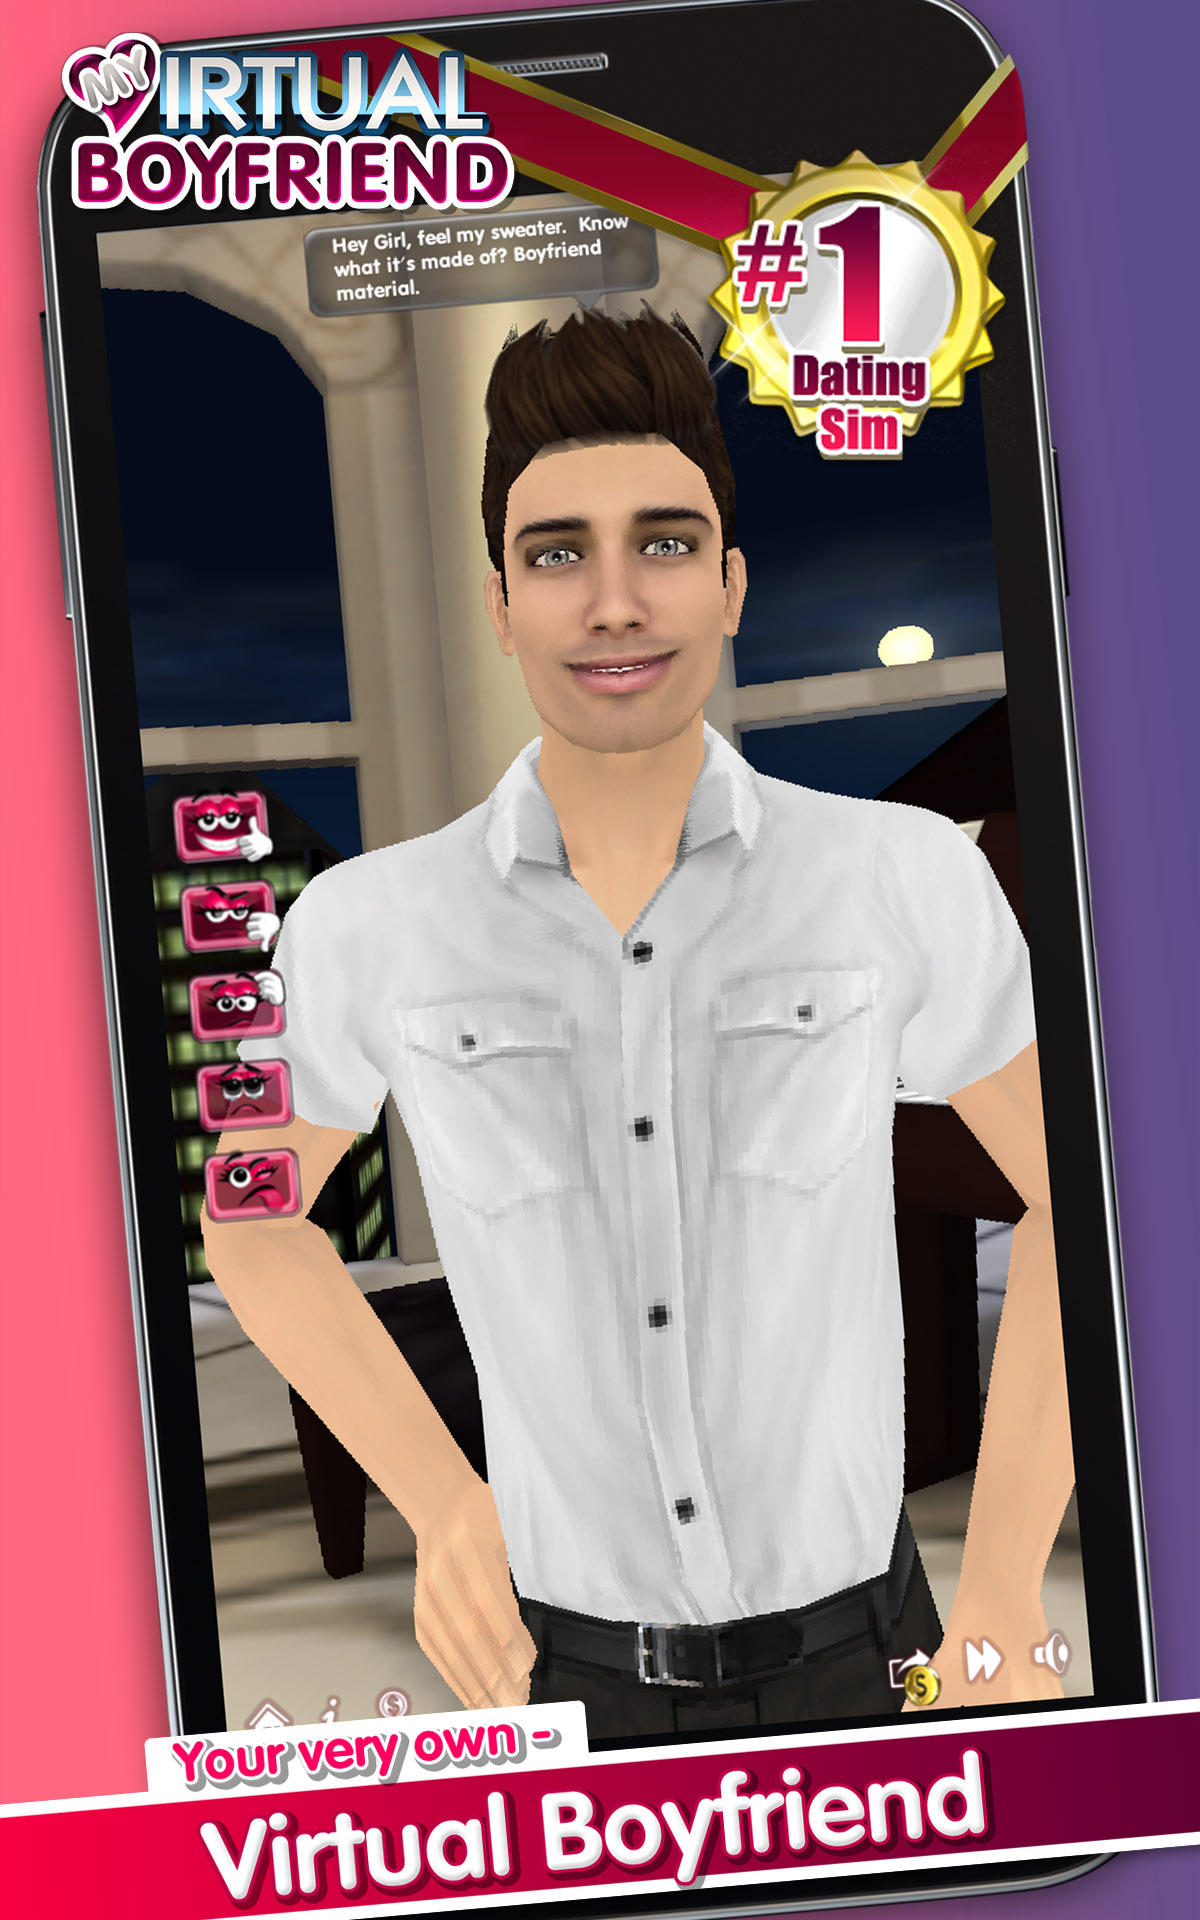 Amazon.com: My Virtual Boyfriend Free: Appstore for Android